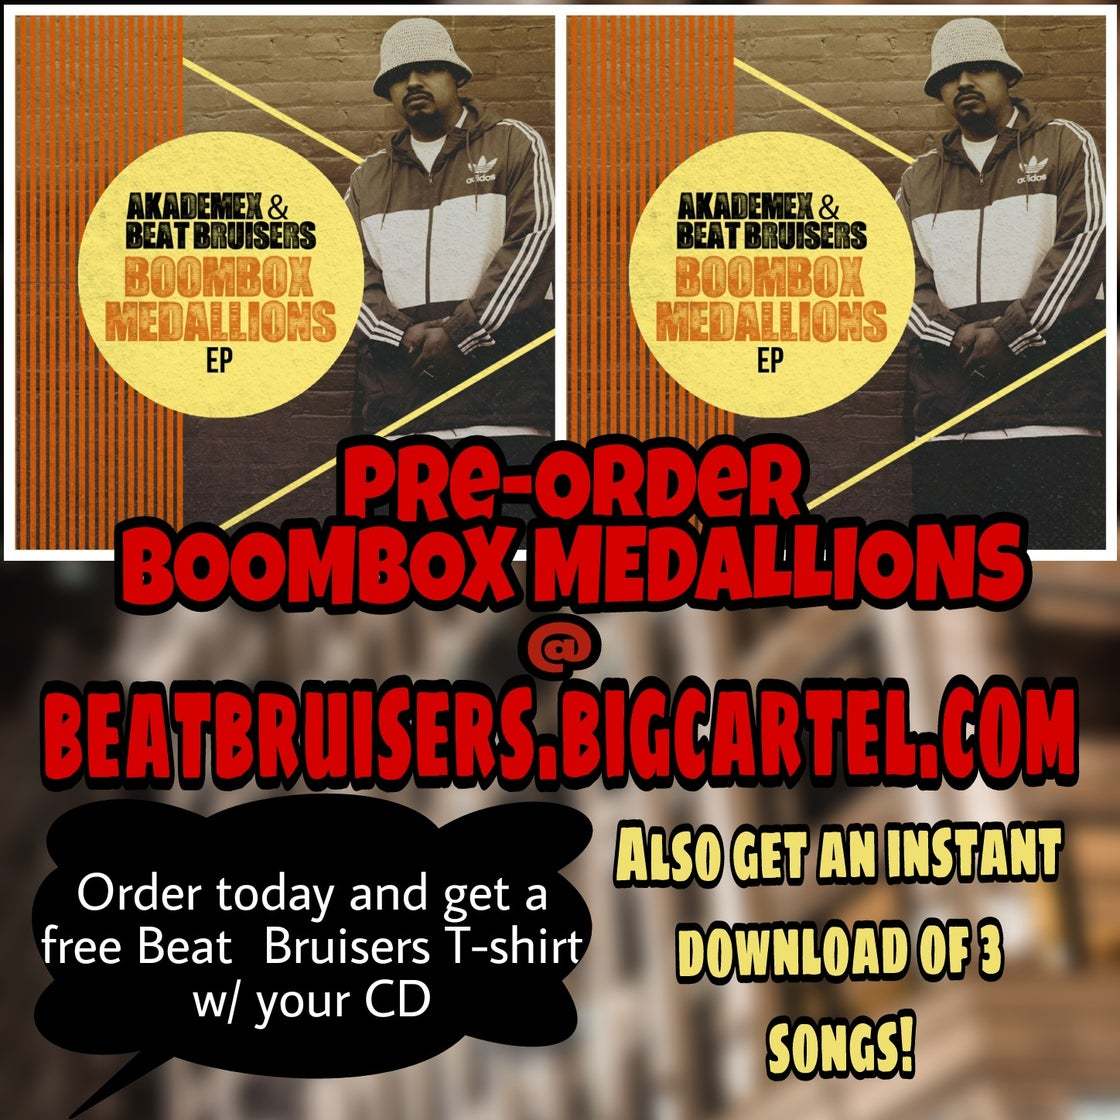 Image of Boombox Medallions